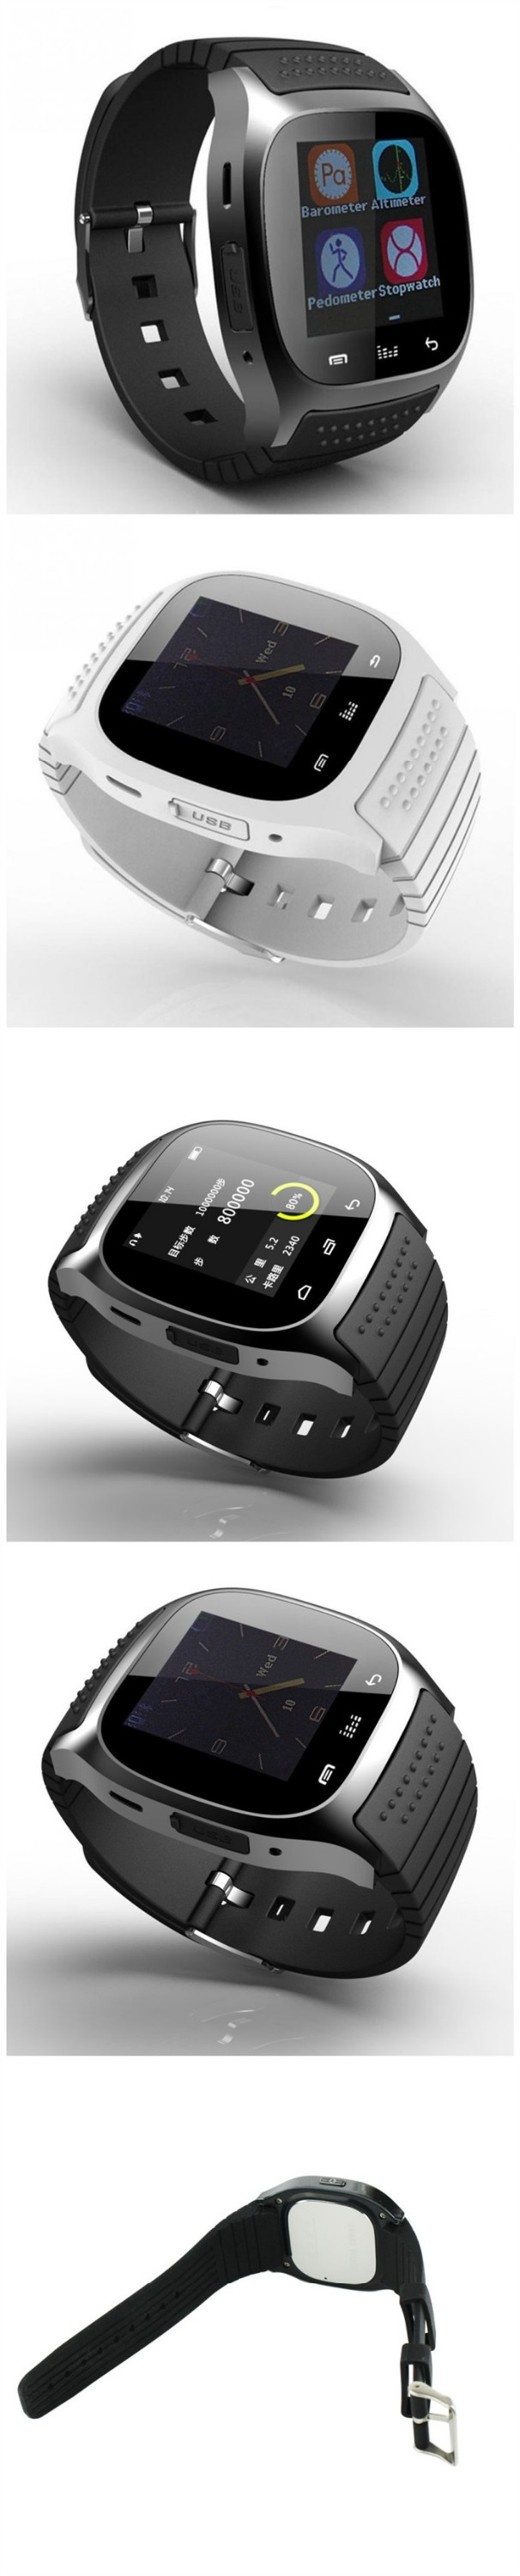 smart watch 2016 1.4inch waterproof m26 smart watch Bluetooth Phone watch for Android and IOS